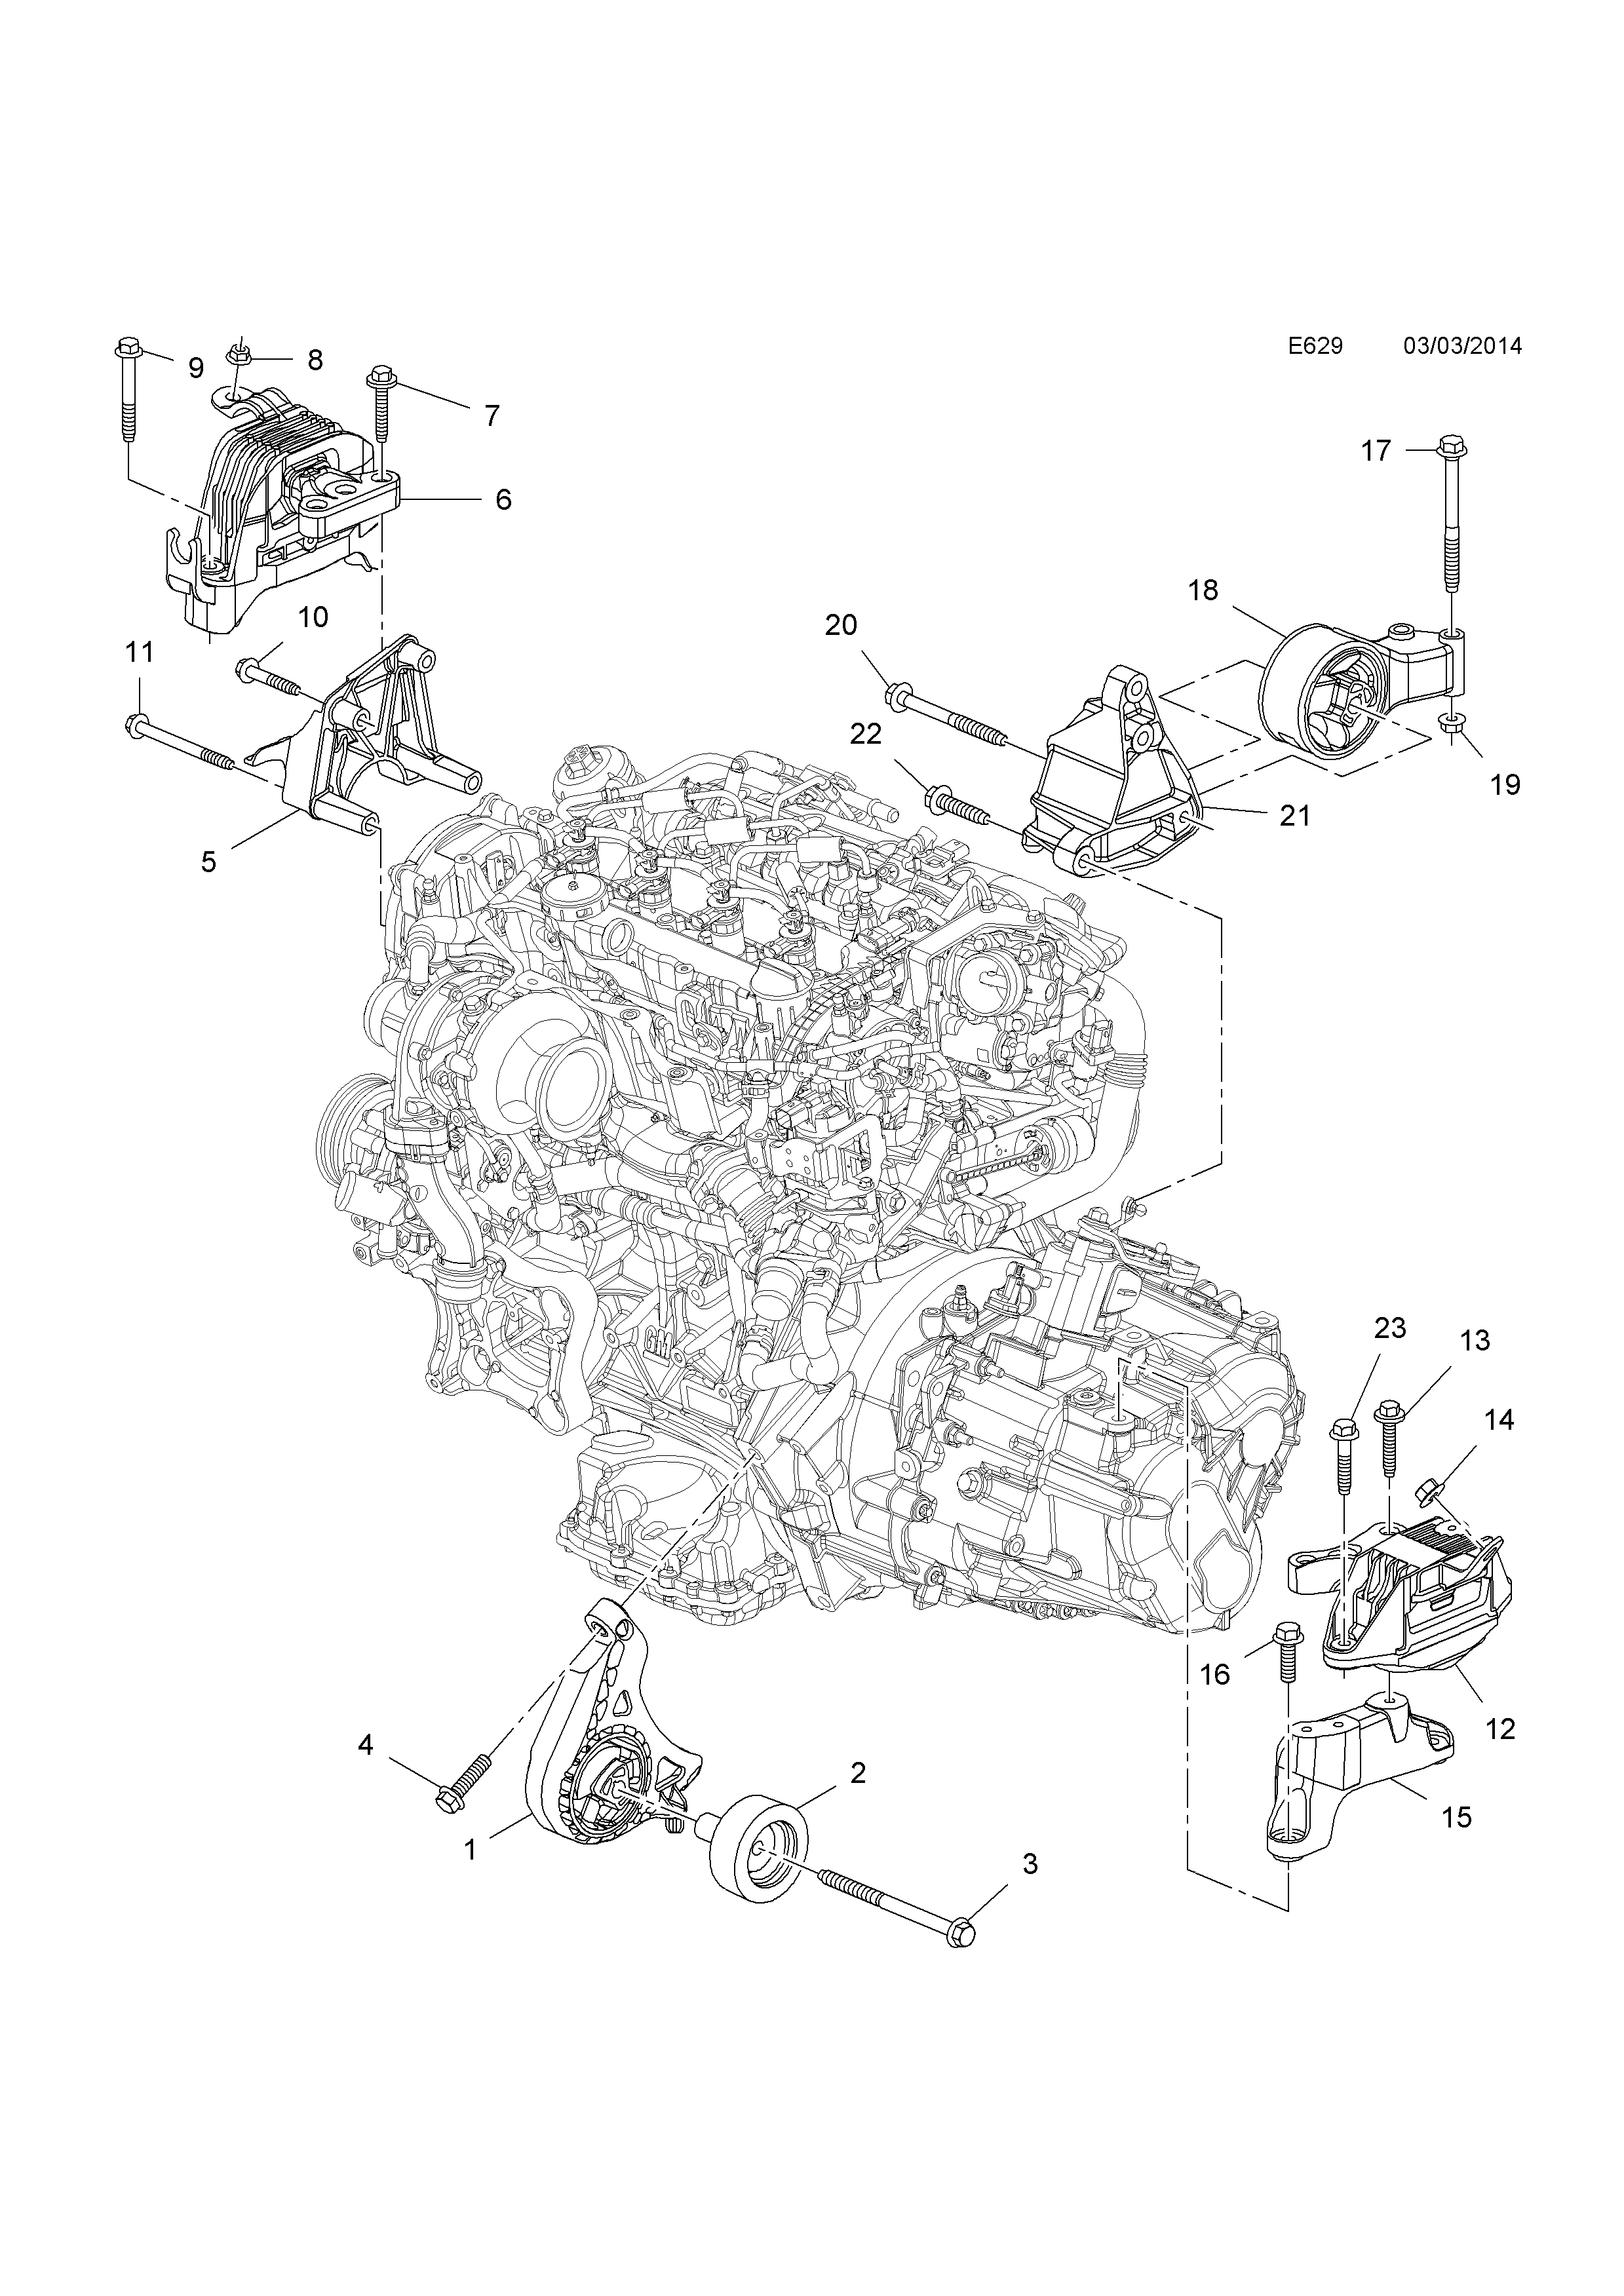 Opel zafira c 2012 e engine and clutch 6 b20dthlfs list of parts ccuart Image collections